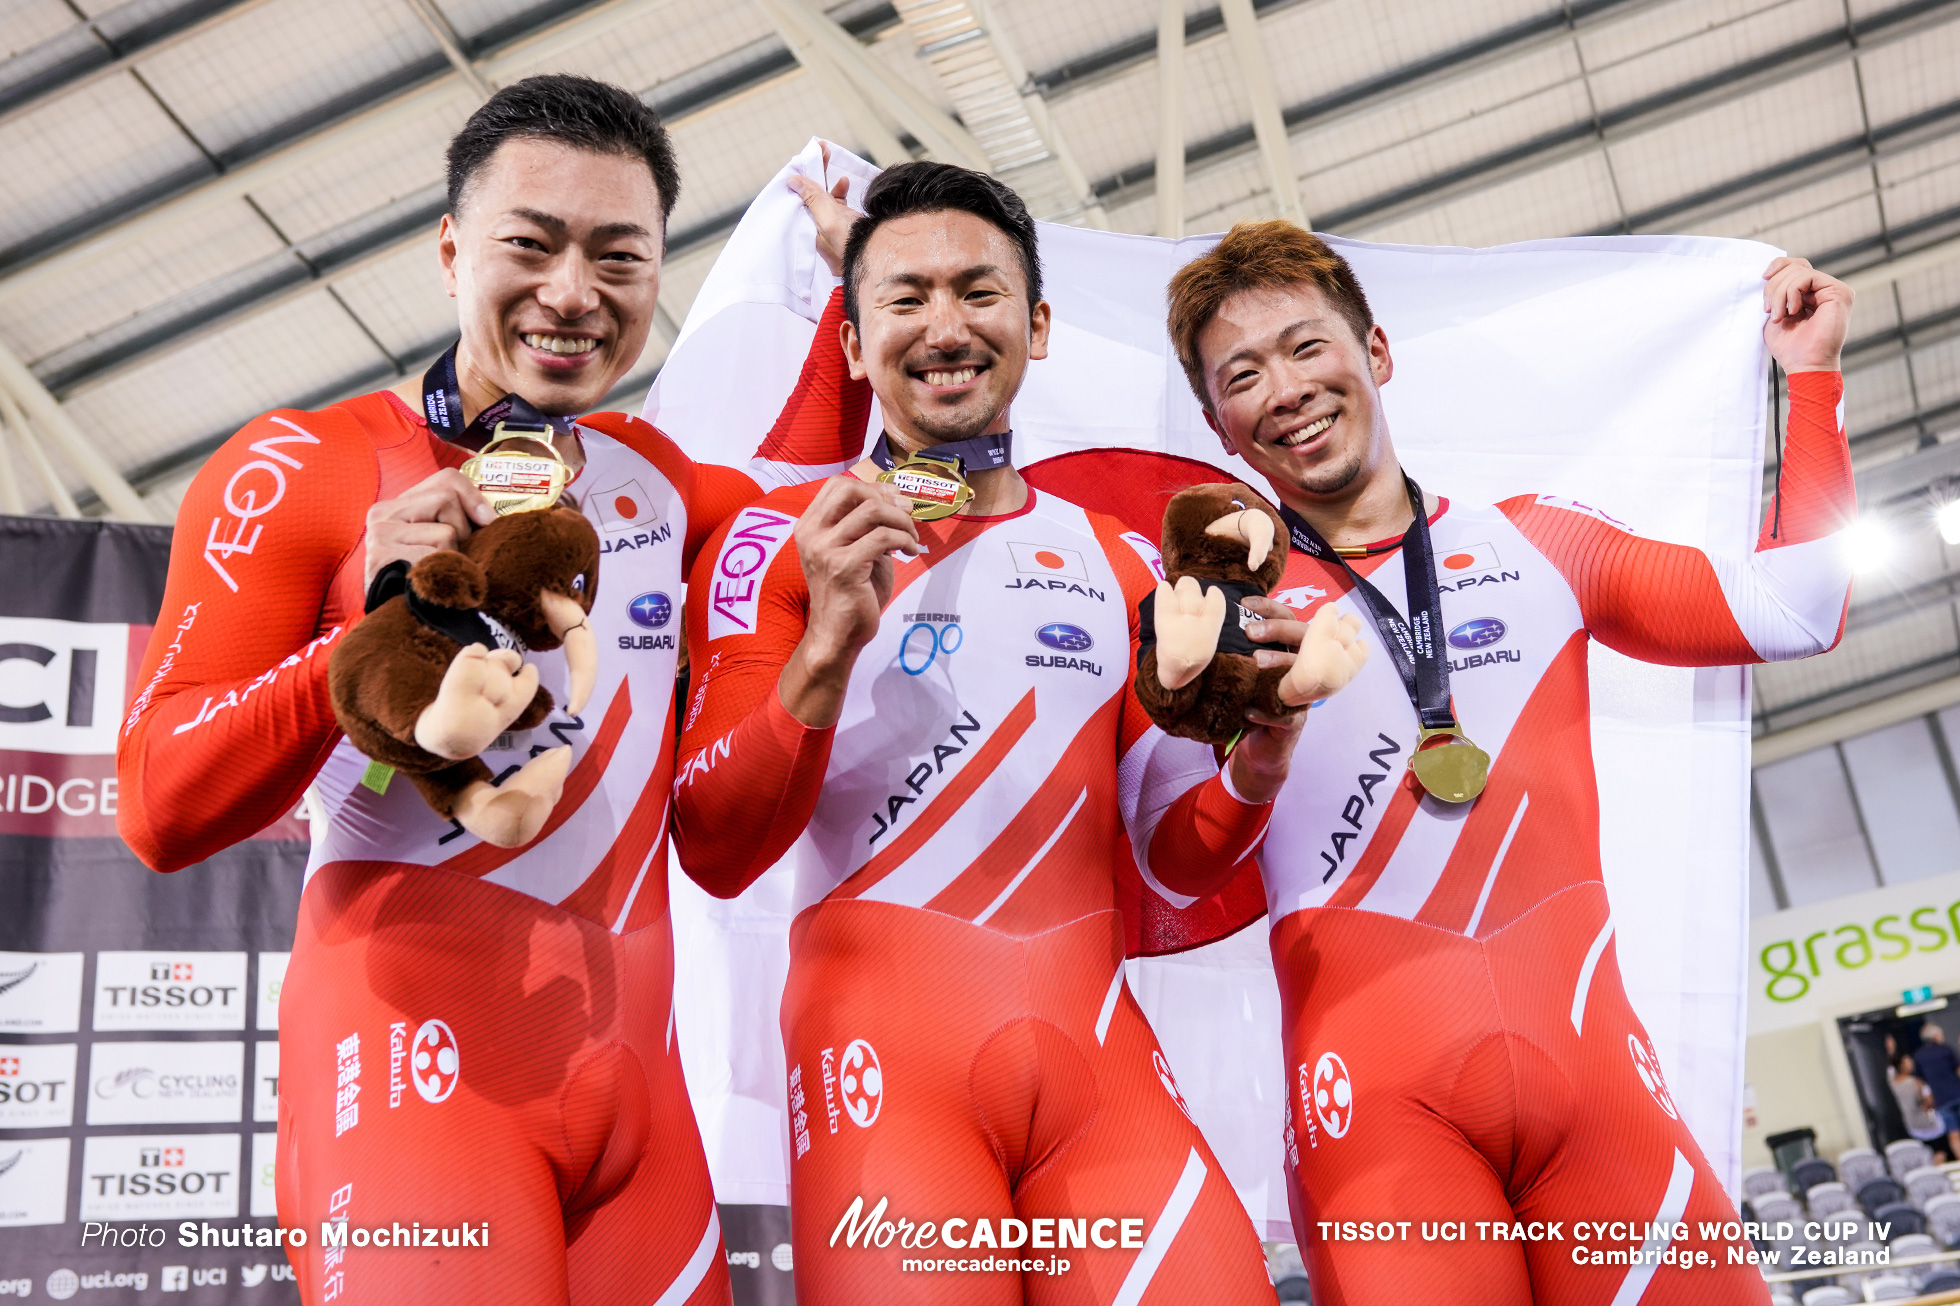 Final / Men's Team Sprint / TISSOT UCI TRACK CYCLING WORLD CUP IV, Cambridge, New Zealand